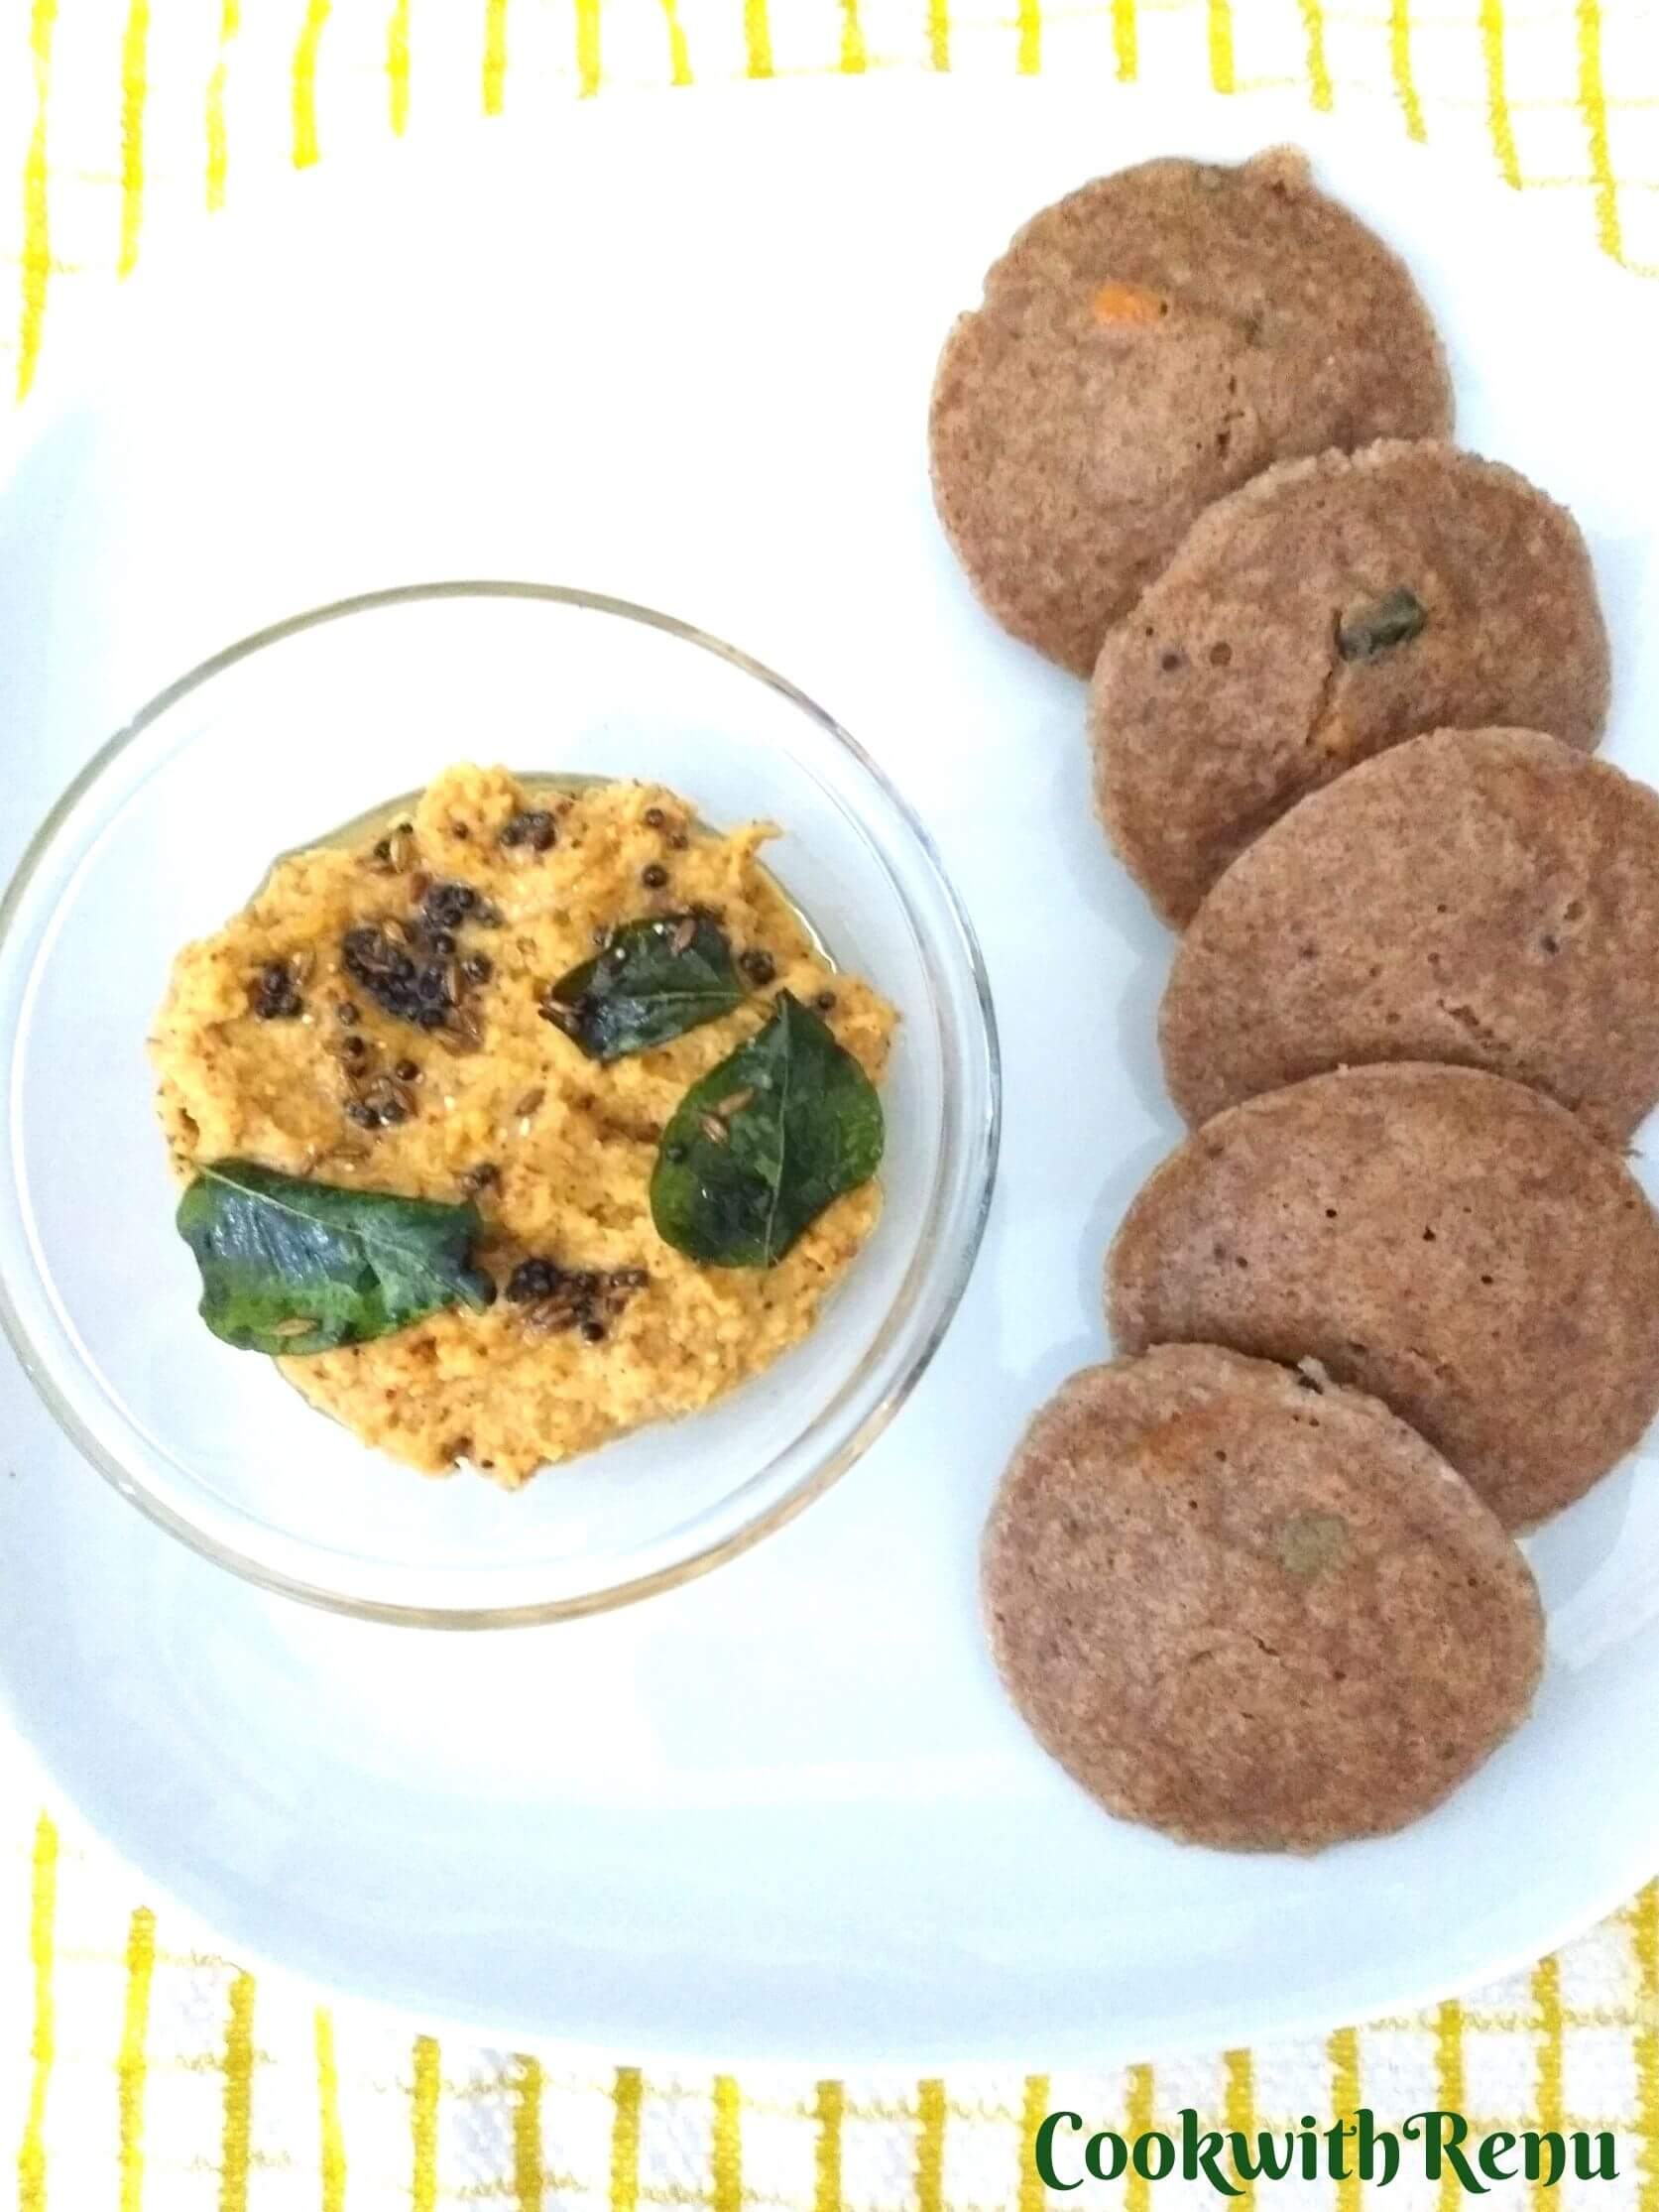 Ragi Idli being served with Chana Dal Chutney